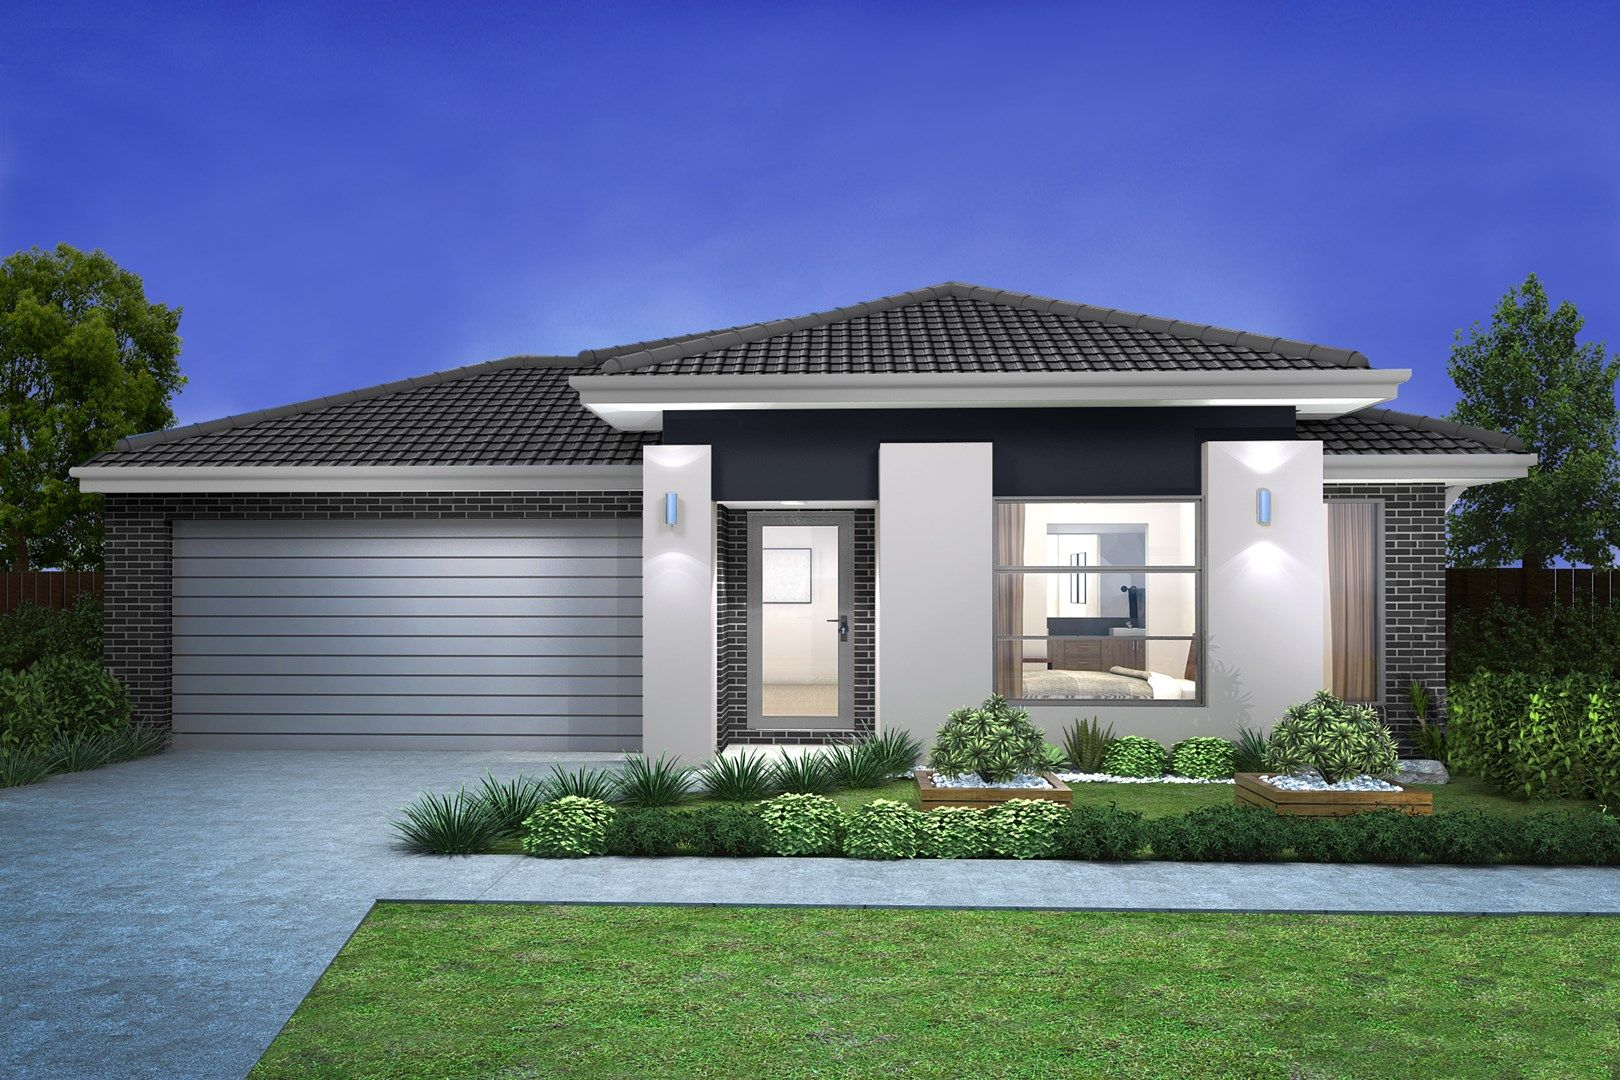 Lot 1059 Yarlington Road, Tarneit VIC 3029, Image 0